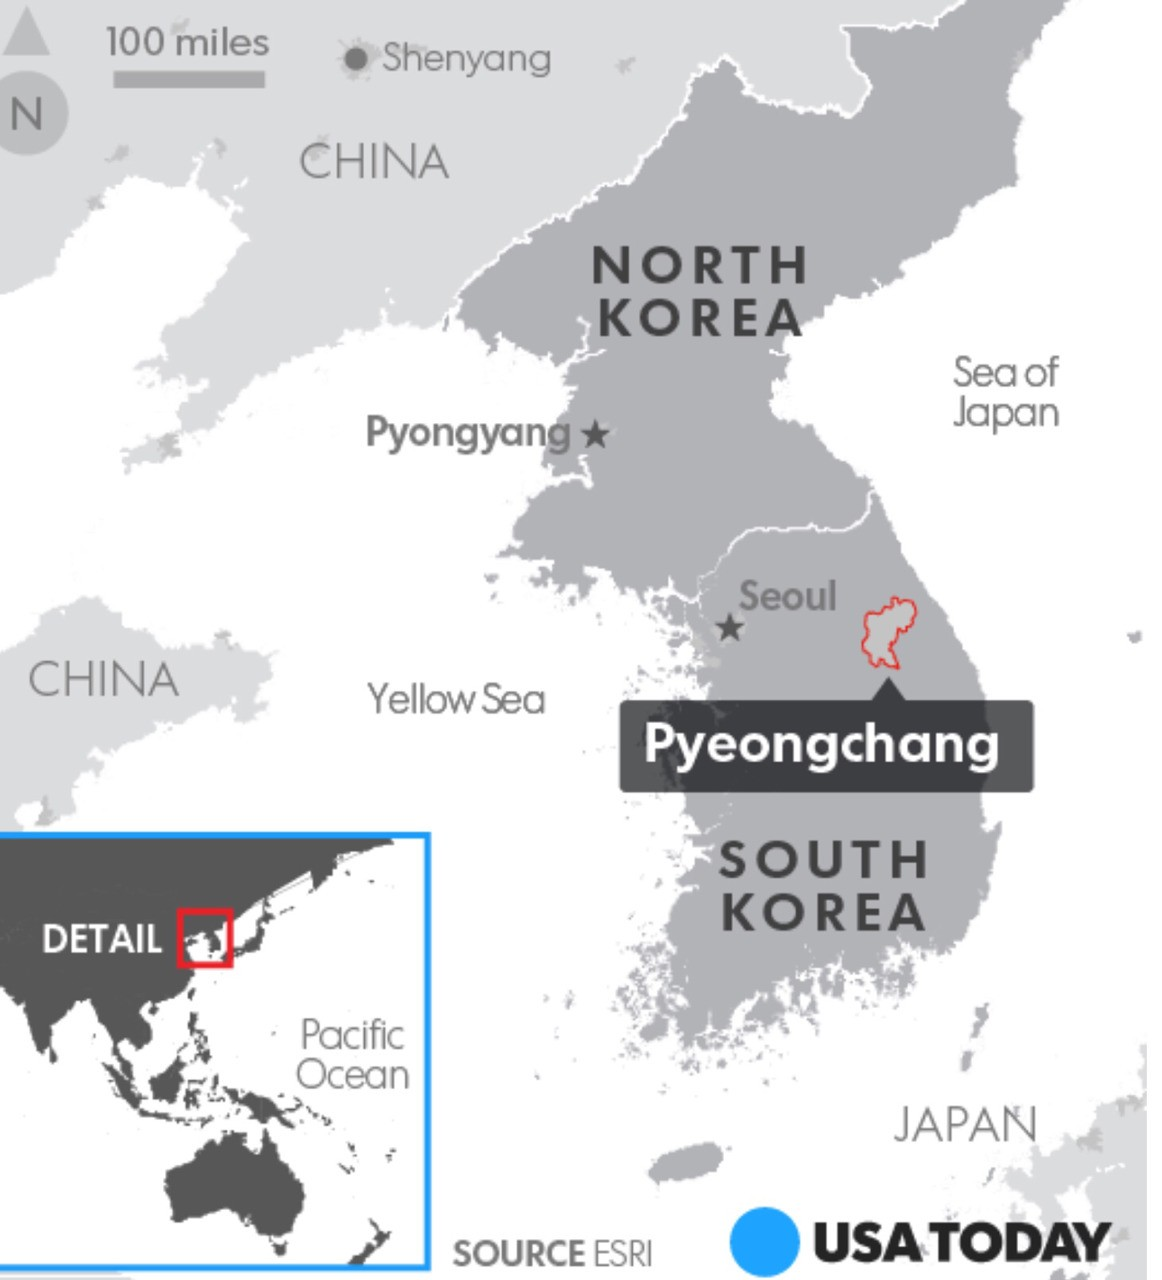 Where the winter olympics are being held